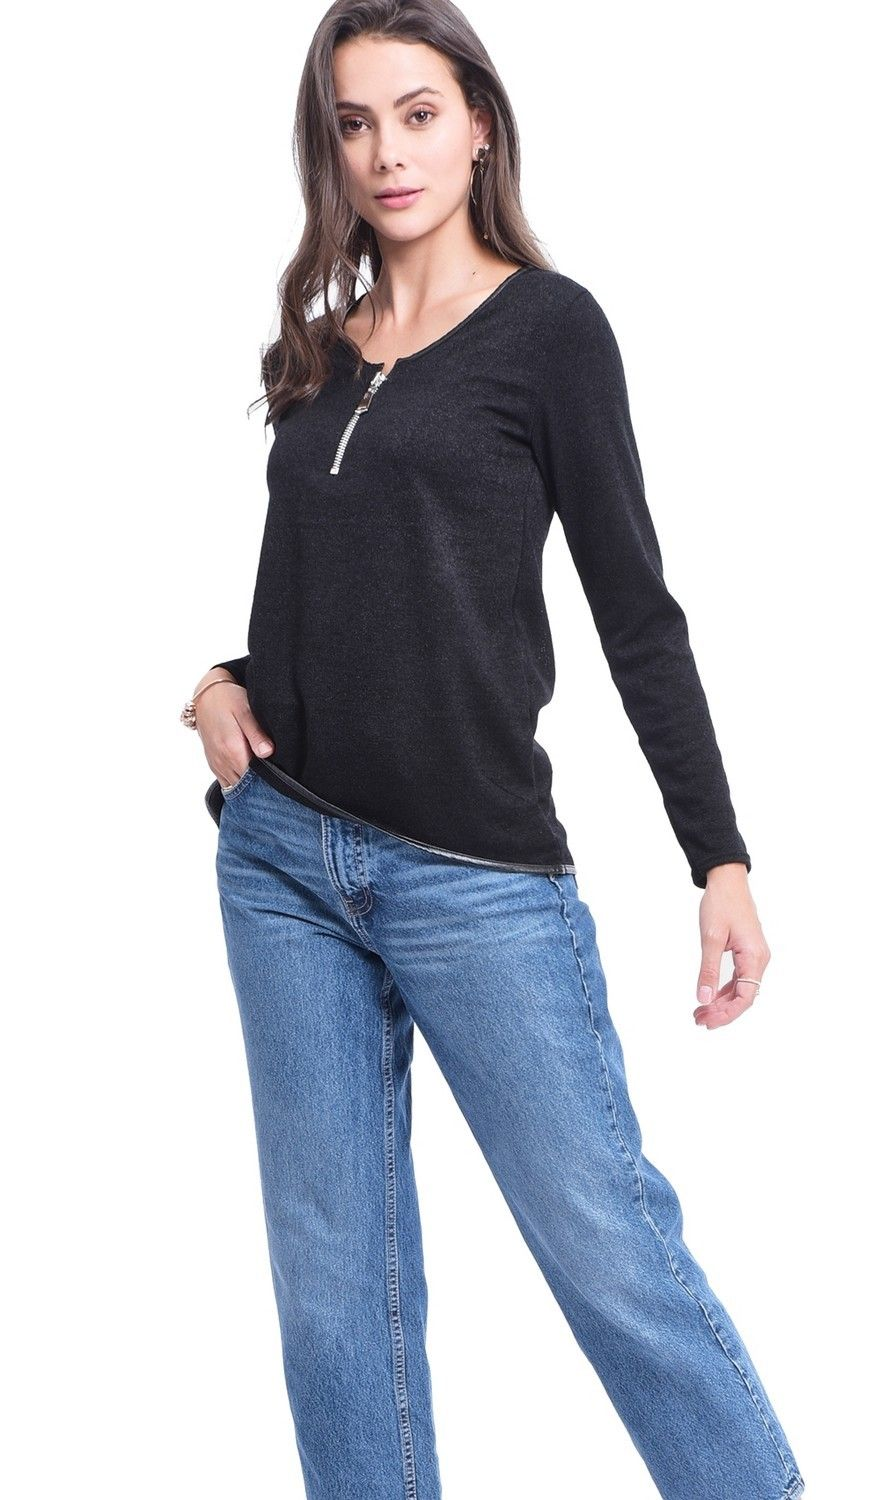 Assuili Round Neck Zip Top in Black